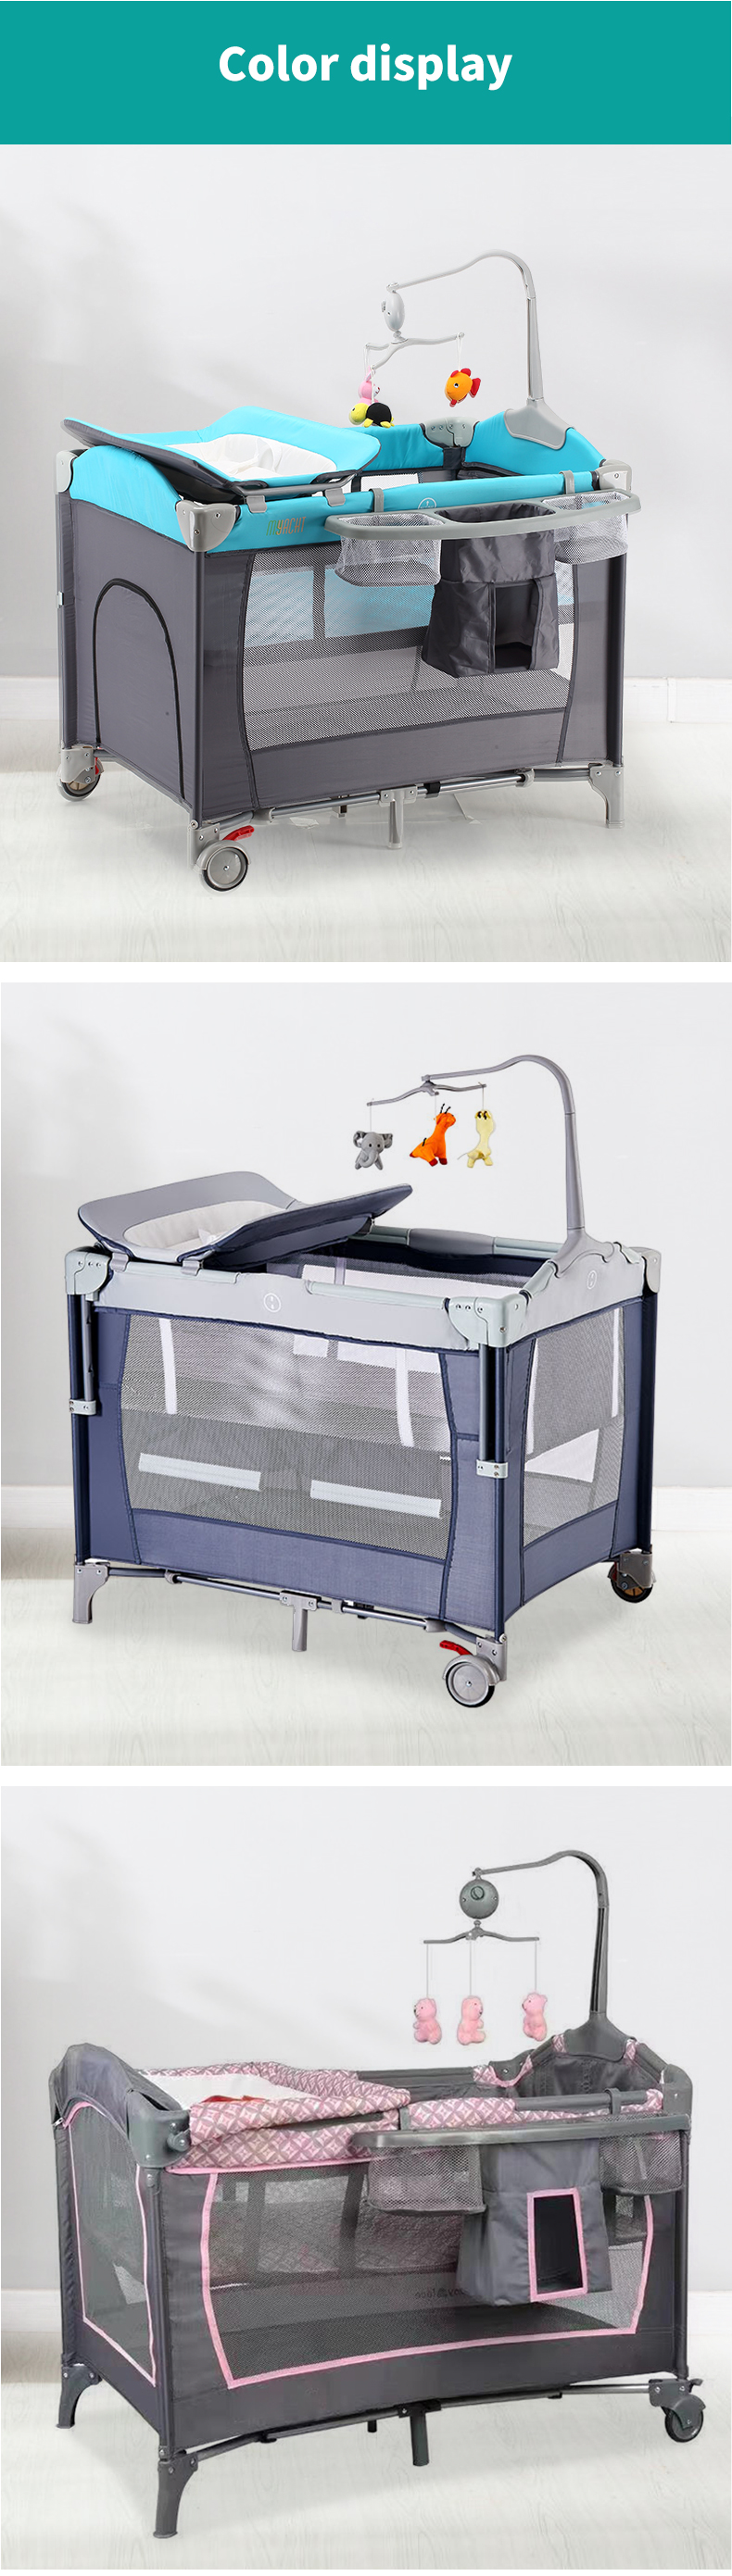 2020 Babilous Wholesale Bedside Travel Unique Folding Pack And Play Portable Adult Baby Cribs Buy Baby Crib Adult Baby Crib Portable Baby Crib Product On Alibaba Com